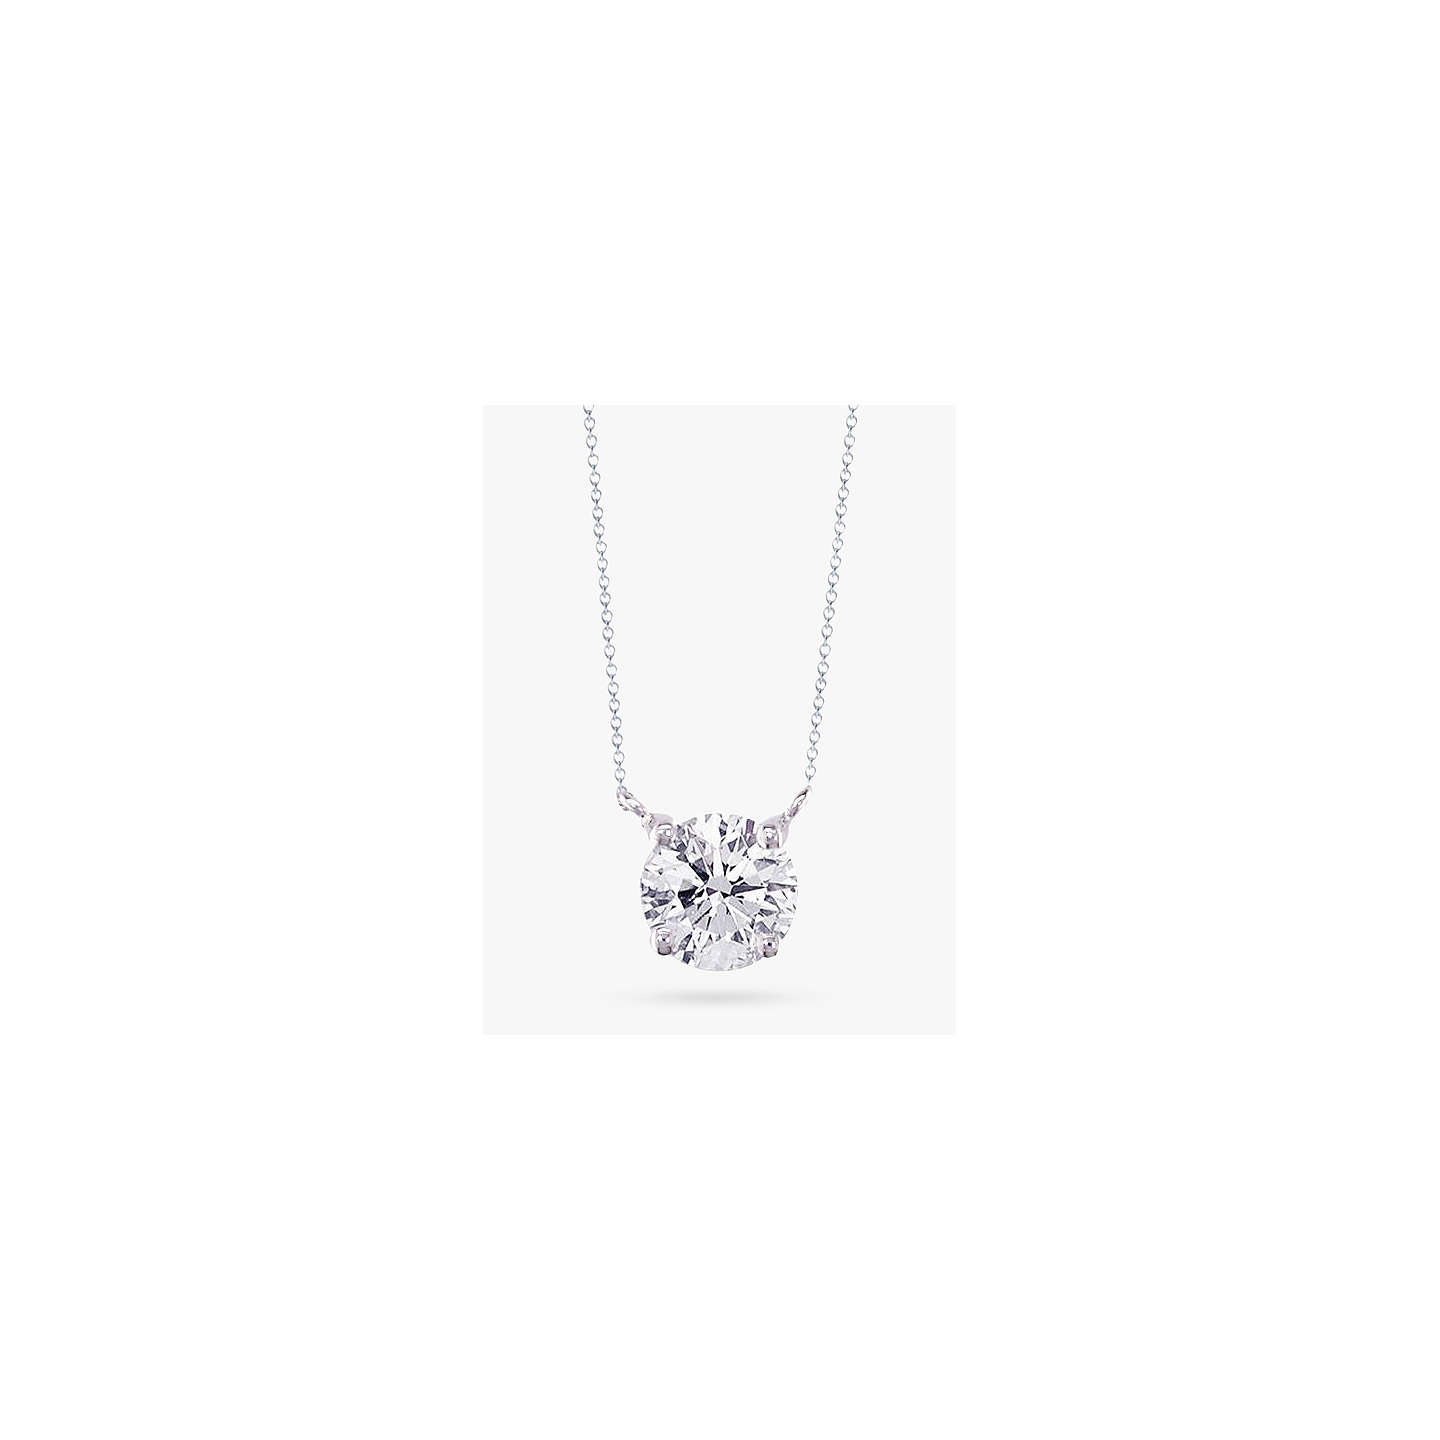 sale j igi carat necklaces drop at necklace z tiffany id co for org certified solitaire jewelry img platinum and copy diamond